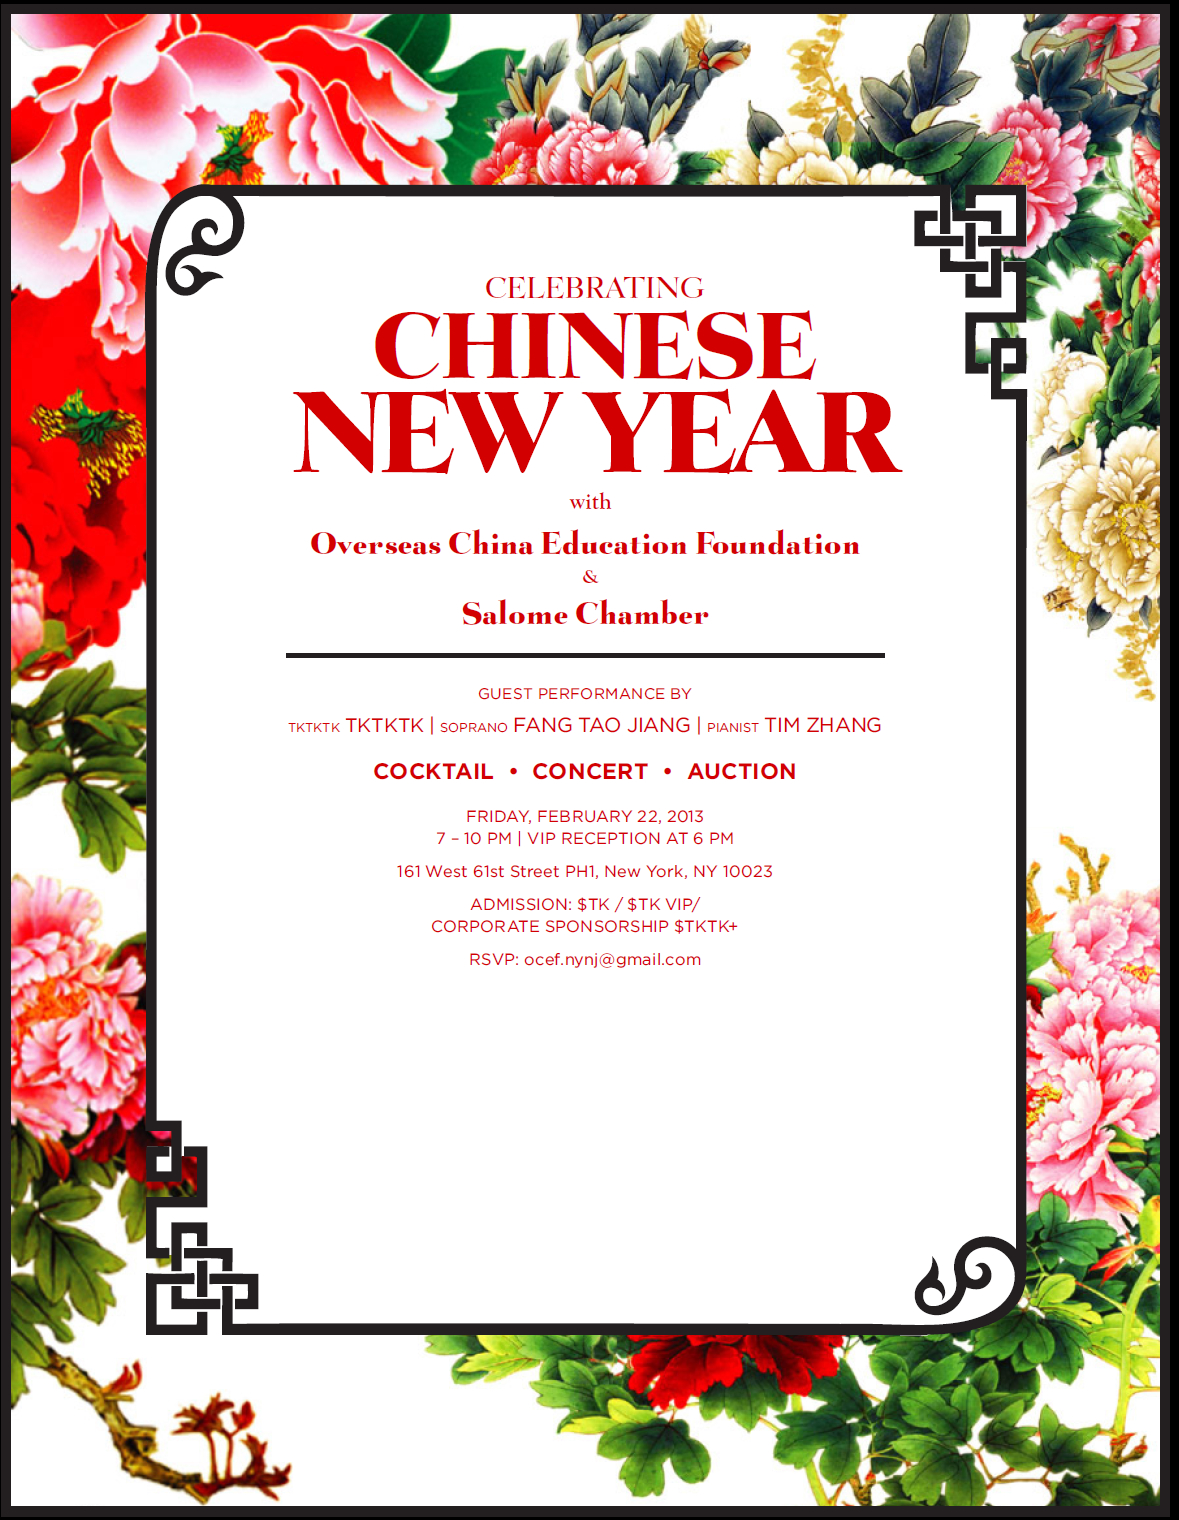 About modern business start bootstrap template 2014 ocef ny chapter chinese new year benefit concert and auction spiritdancerdesigns Choice Image